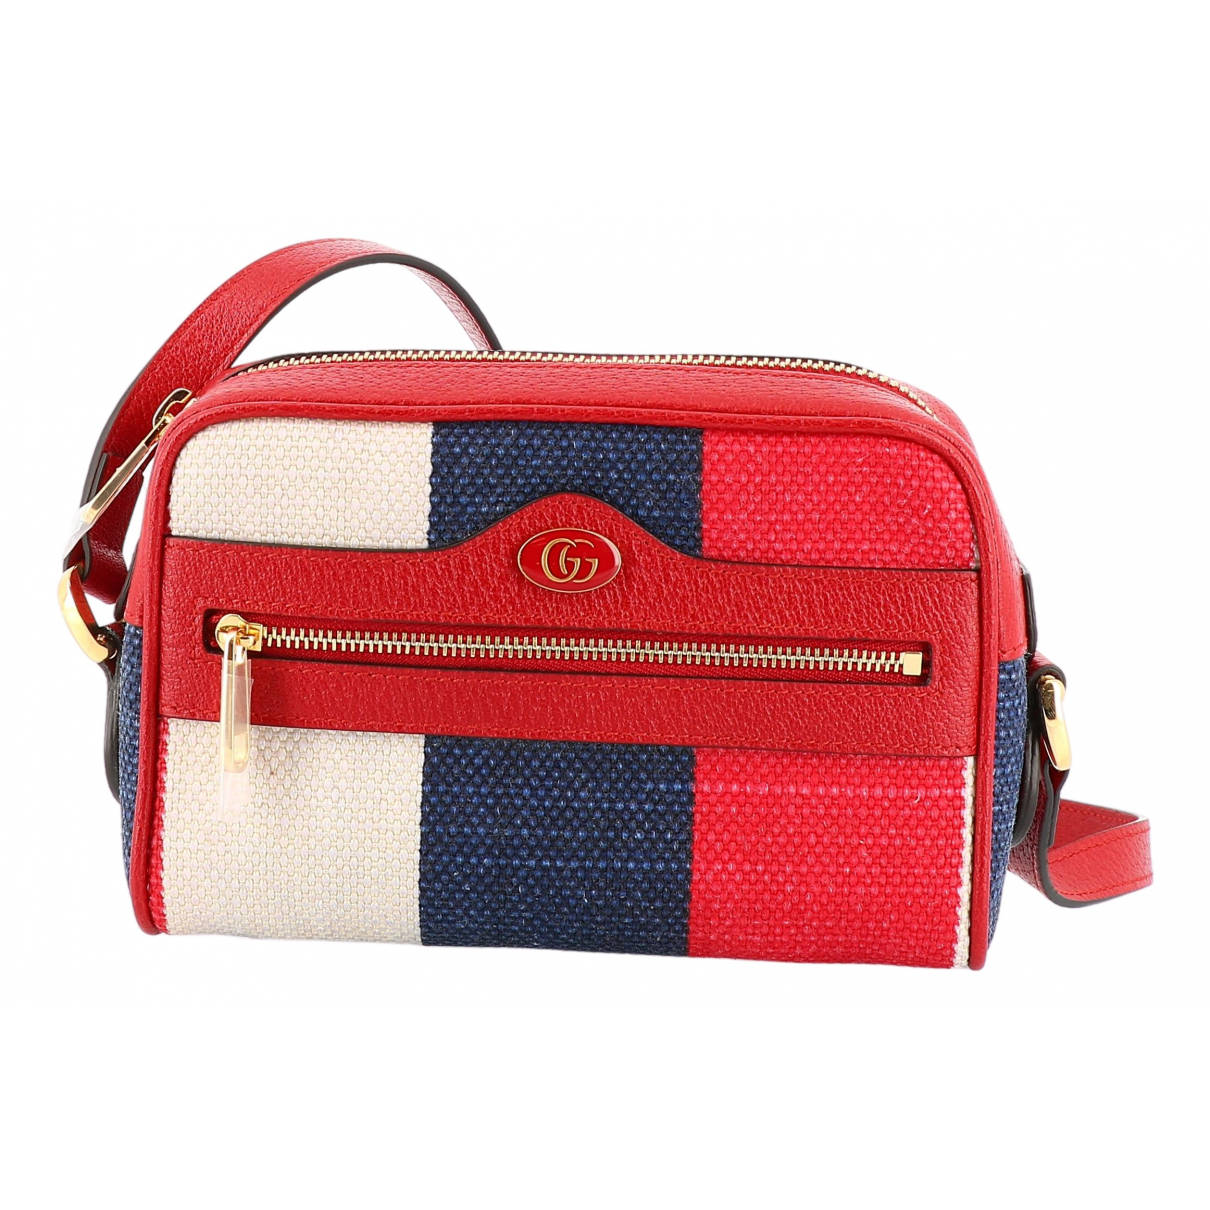 Gucci Ophidia Red Cloth handbag for Women \N